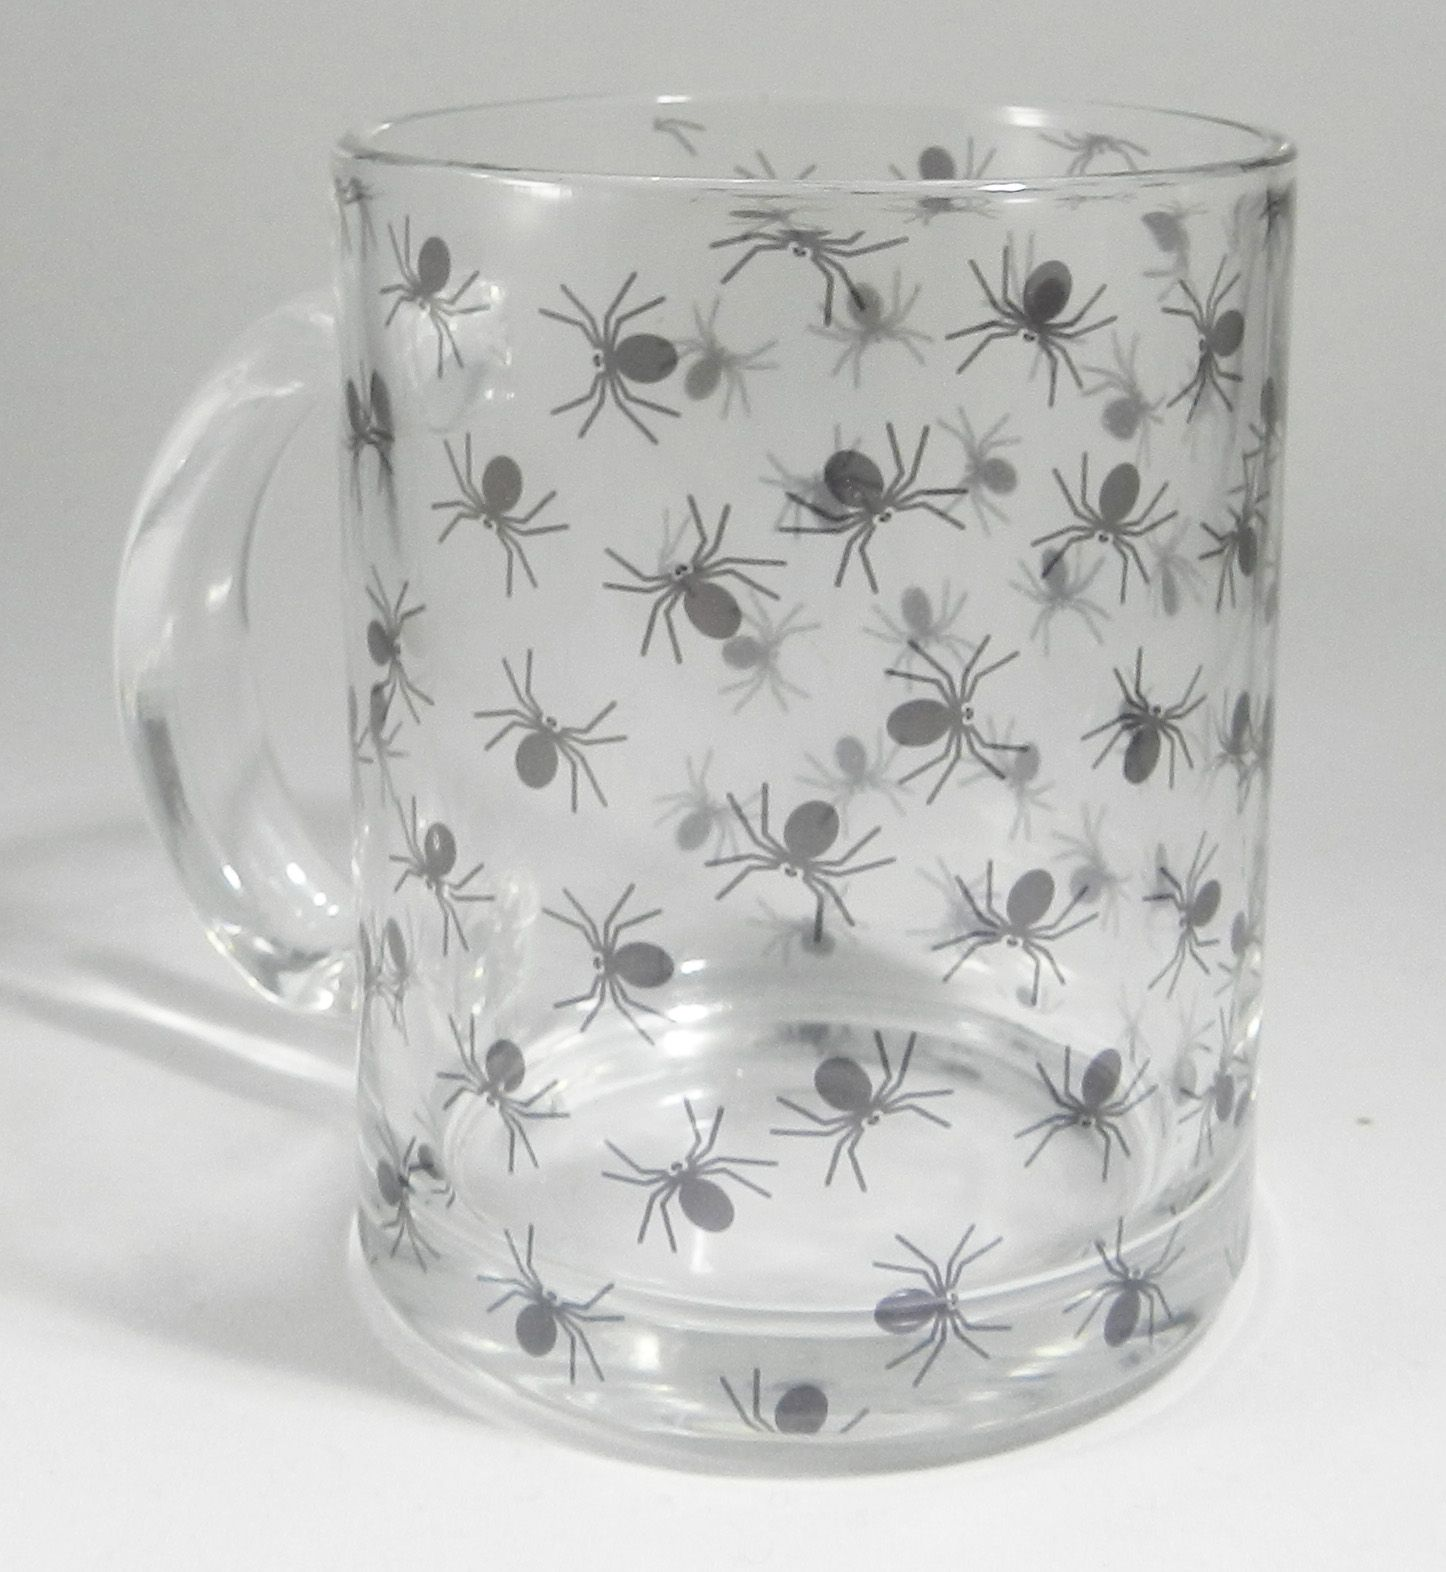 The Black Spider Glass Mug by Half a Donkey. Not for Arachnophobe's. A clear glass mug covered with black spiders. Vintage style mug with modern day design. Perfect for Halloween. High Quality Glass Mug which is dishwasher safe. Height 9.5 cm Diameter 8 cm Capacity is 315 ml (11oz) From the Series 9 Nature Range by Half a Donkey Ltd.